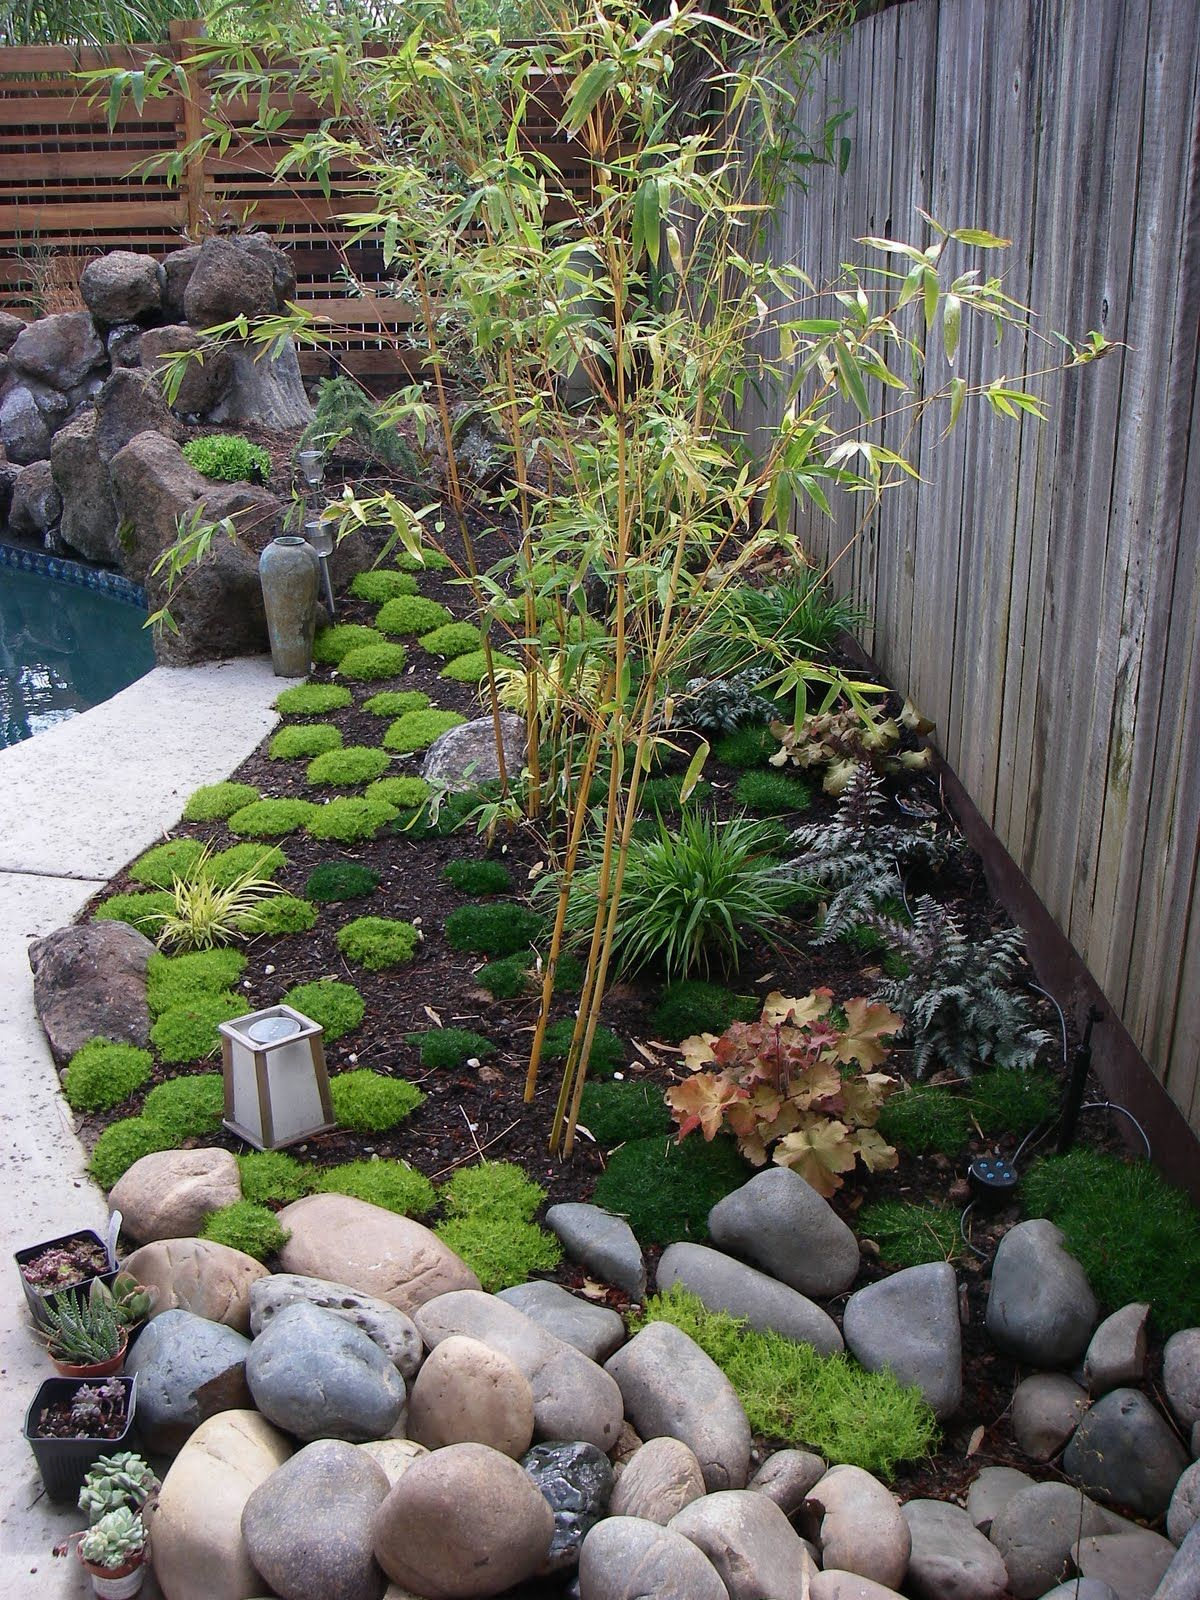 Superbe John And Fred, Owners Of A Home In The Foothill Farms Area Of Sacramento  Purchased Some Bambusa Multiplex U0027Alphonse Karru0027 Bamboo Plants From.